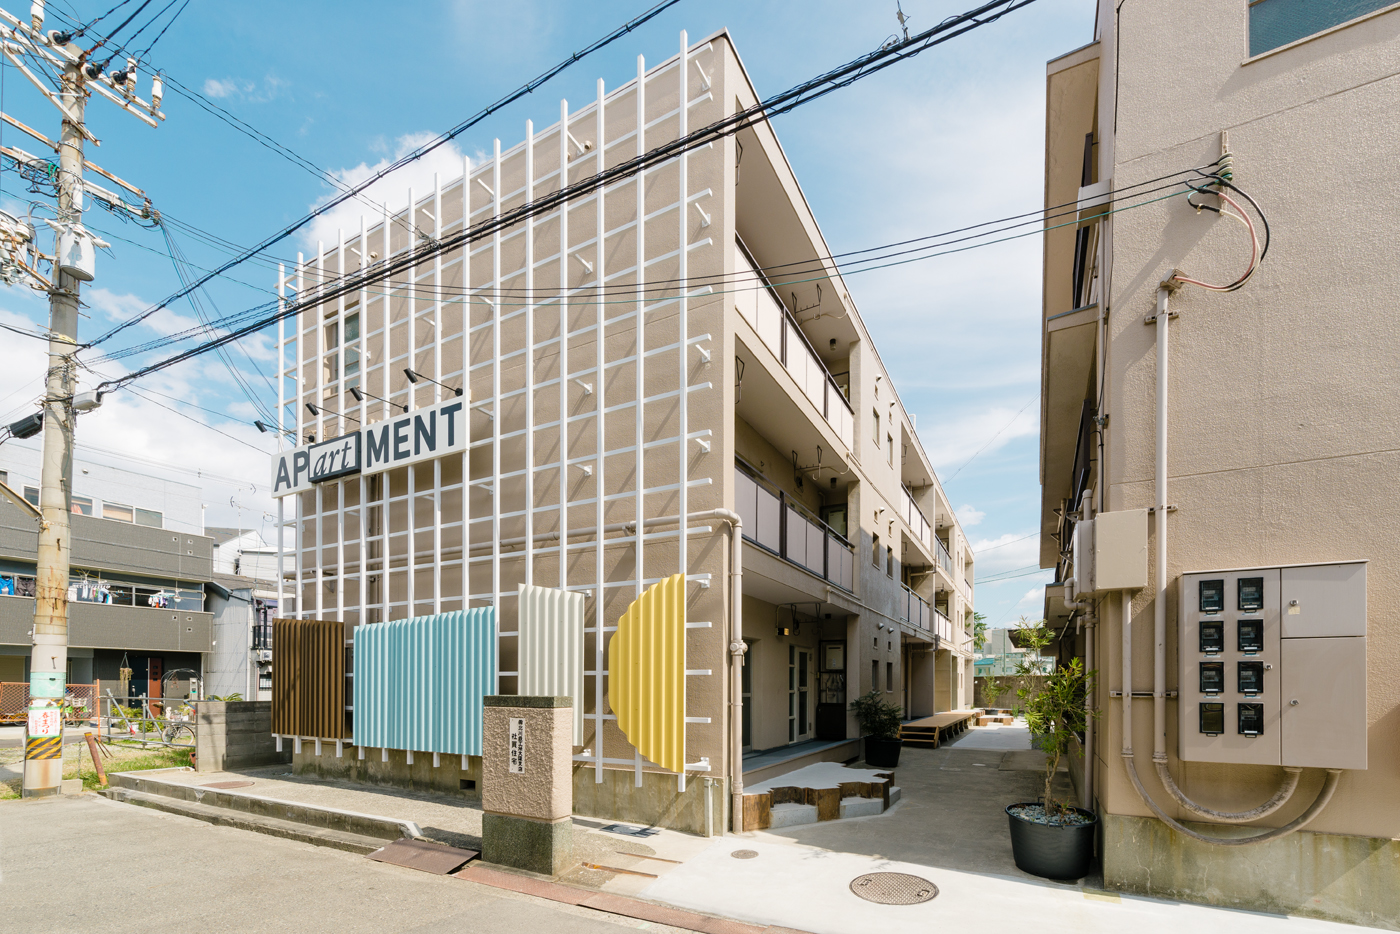 Wordmark, signage and facade by UMA for property development APartMENT in the new creative hub of Osaka's Kitakagaya area